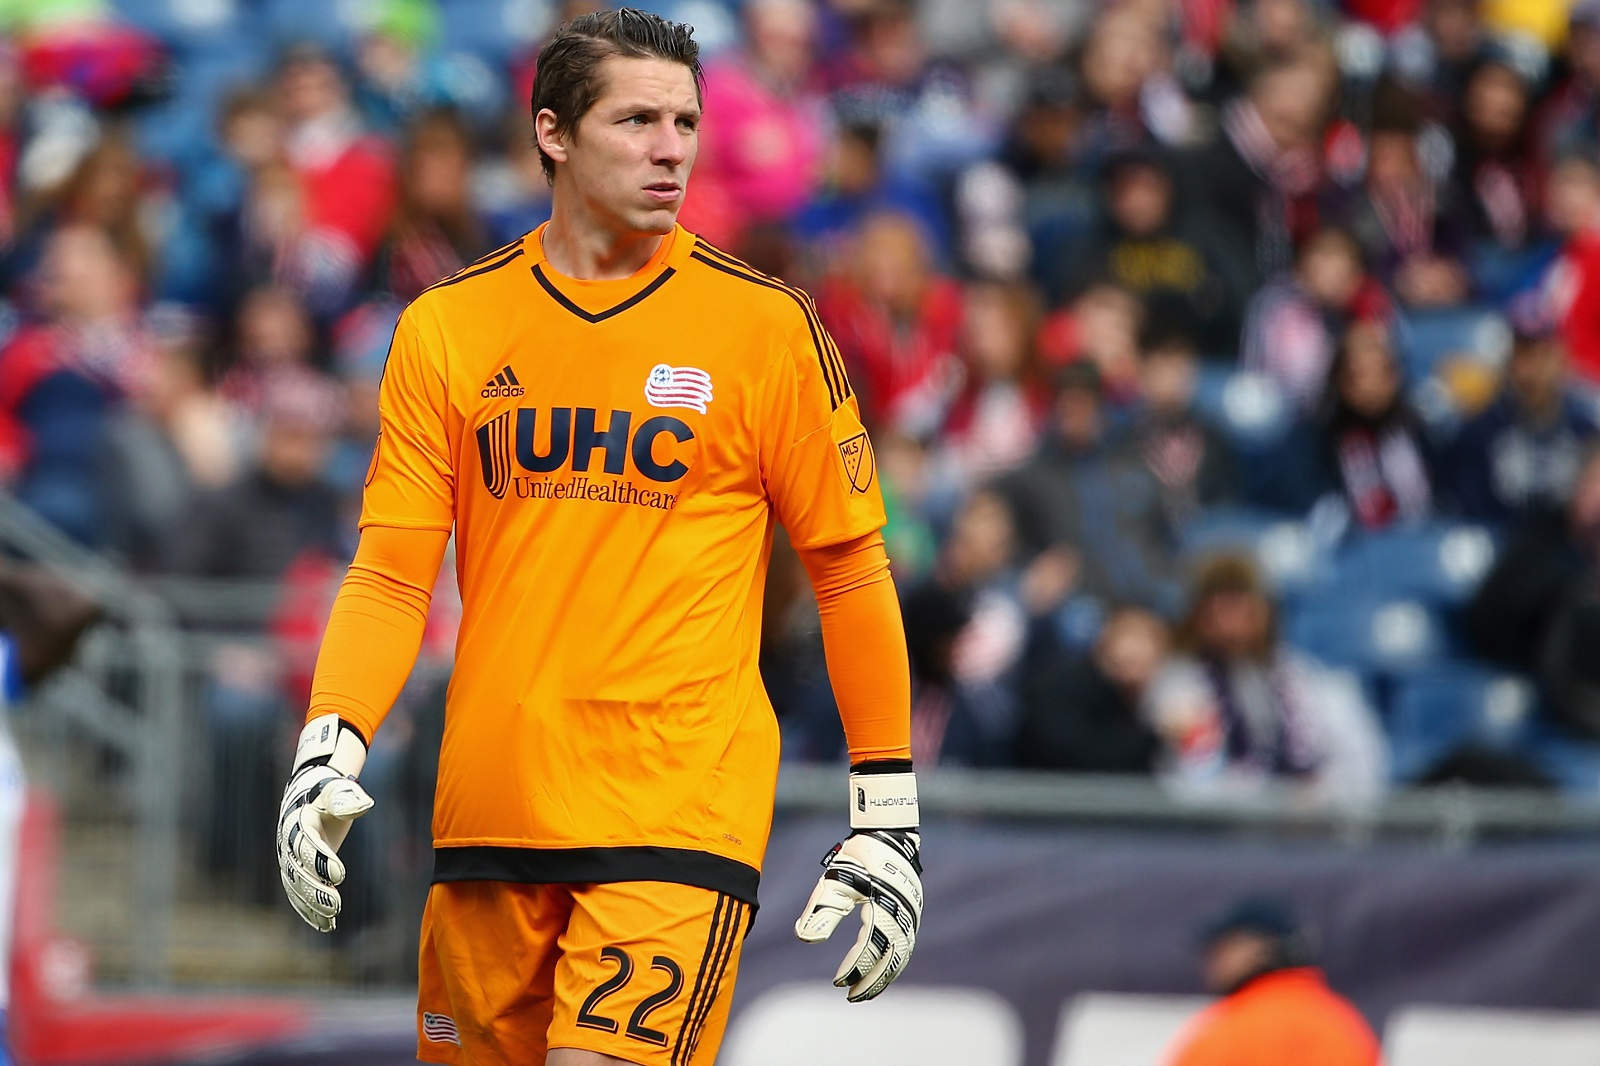 Major League Soccer goalkeeper Bobby Shuttleworth was traded to Minnesota United on Feb. 15, 2017. (Getty Images)